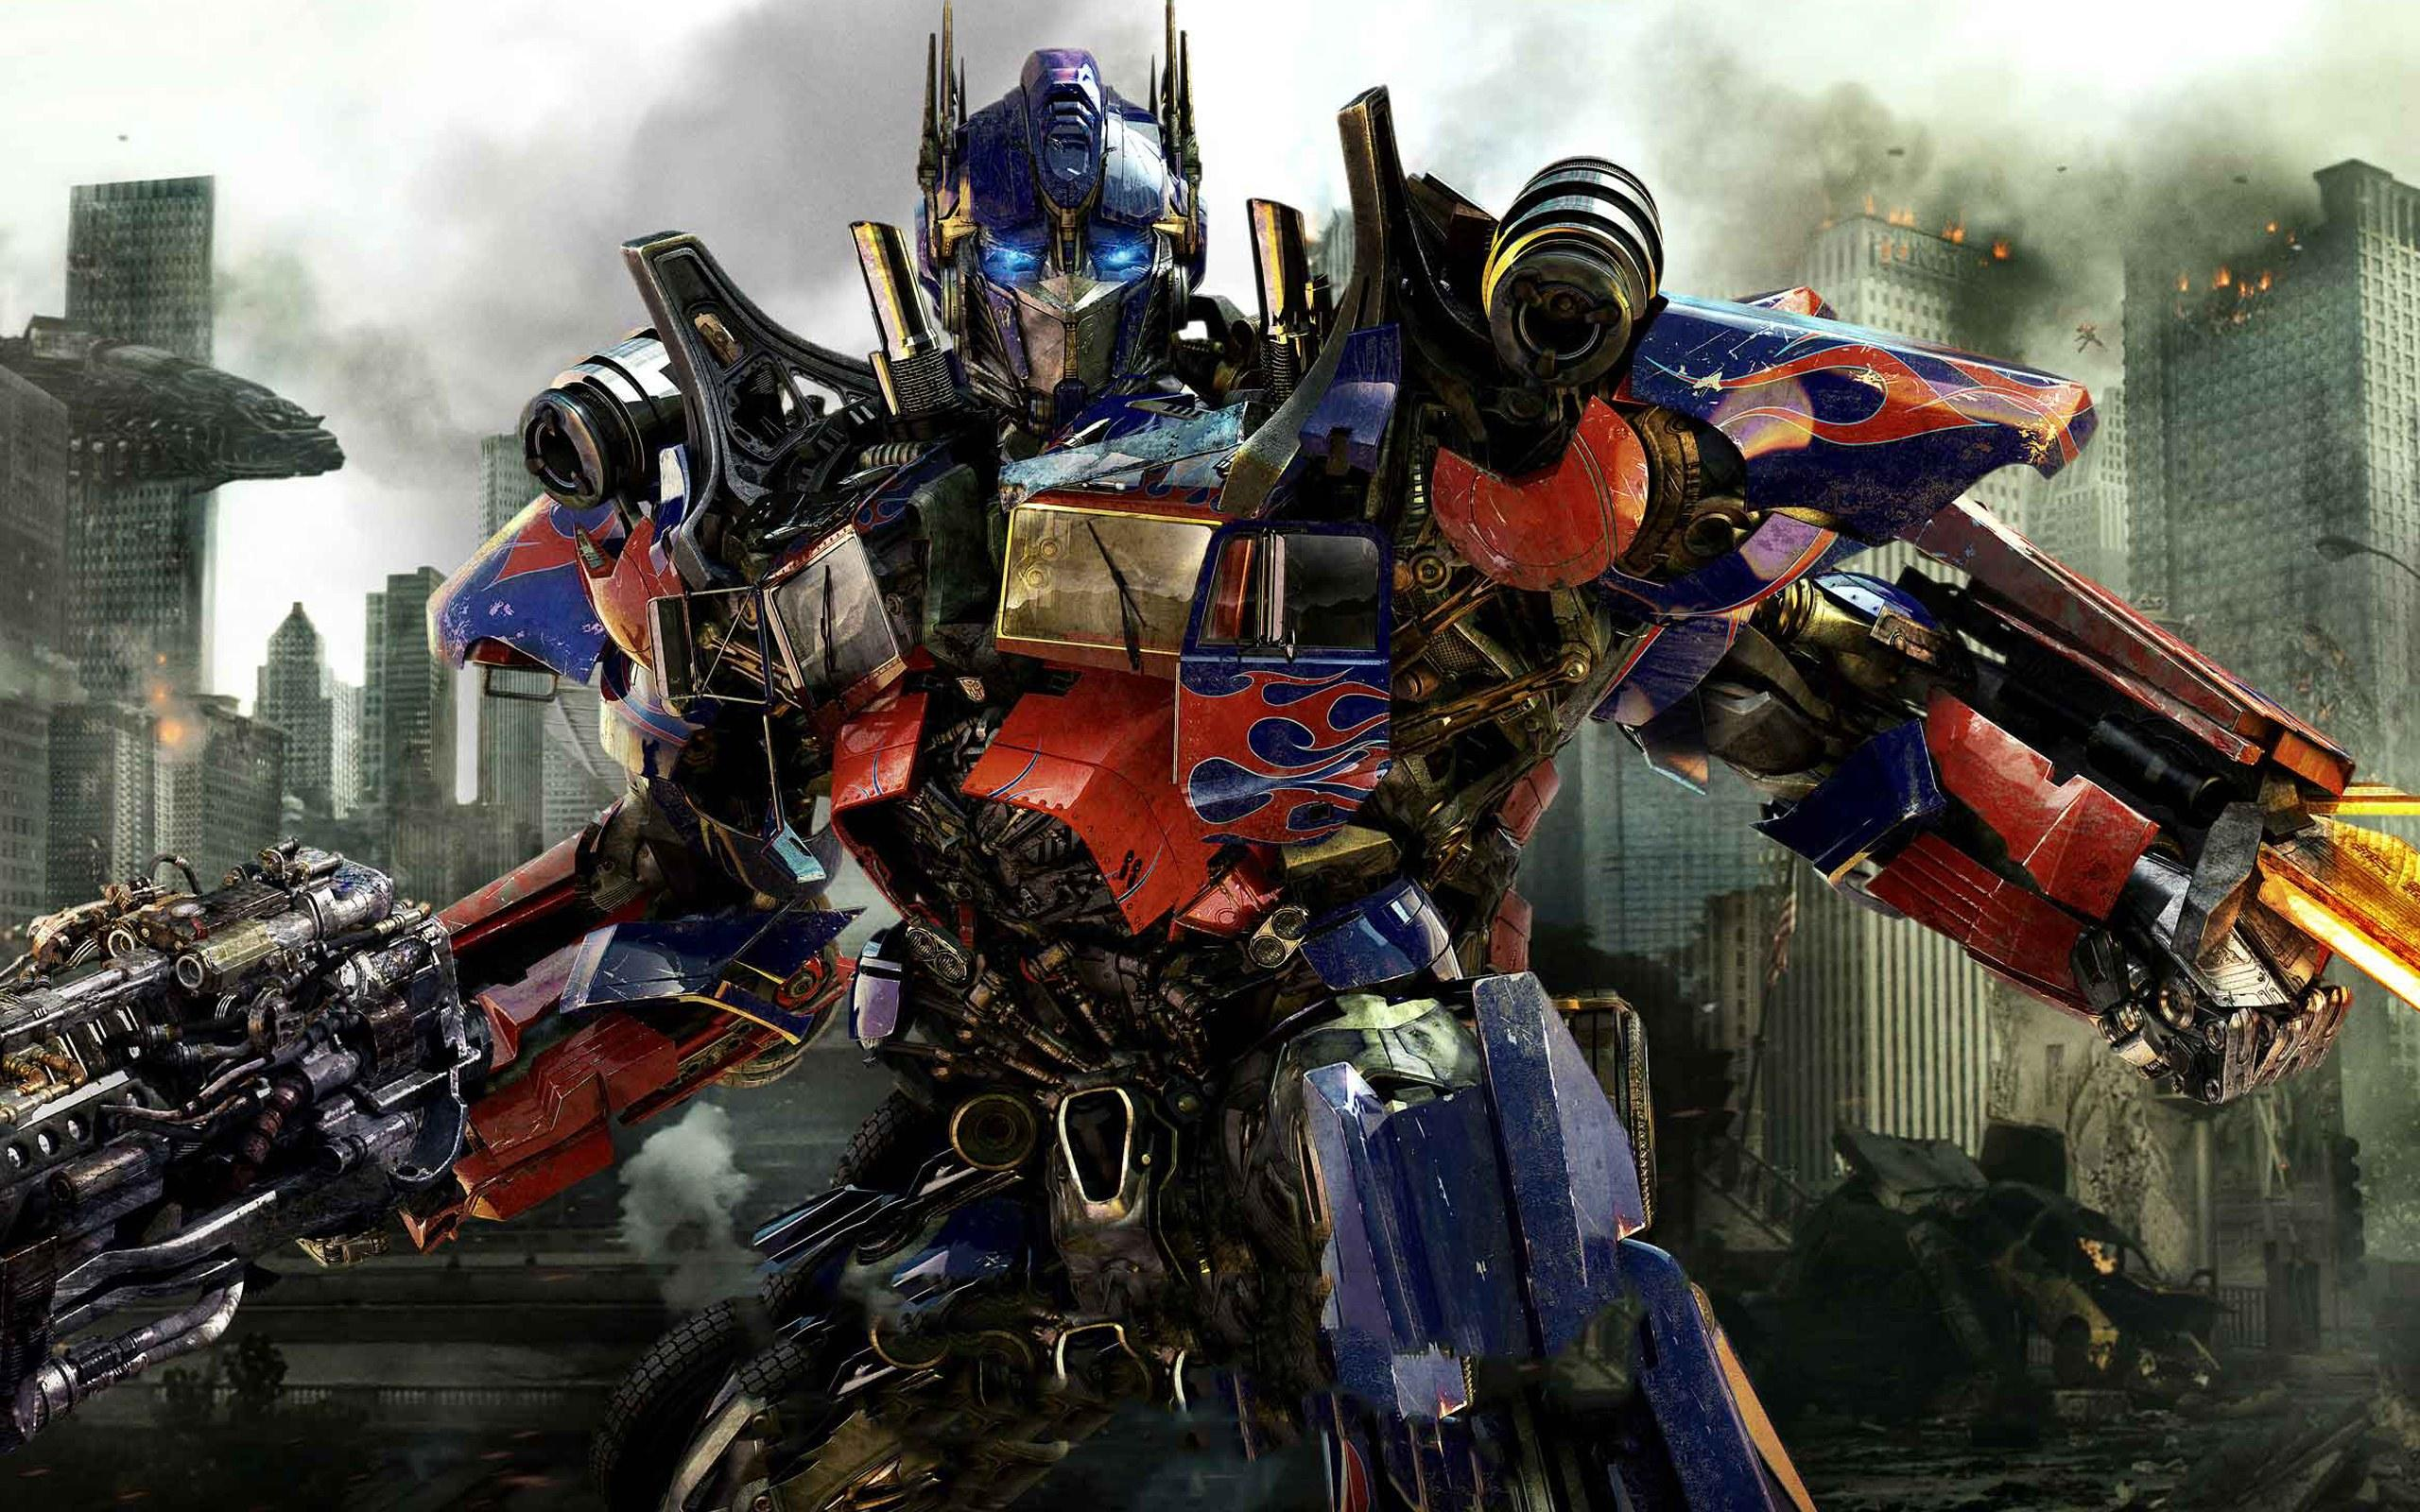 Paramount Enlisting Akiva Goldsman To Ramp Up 'Transformers' Output